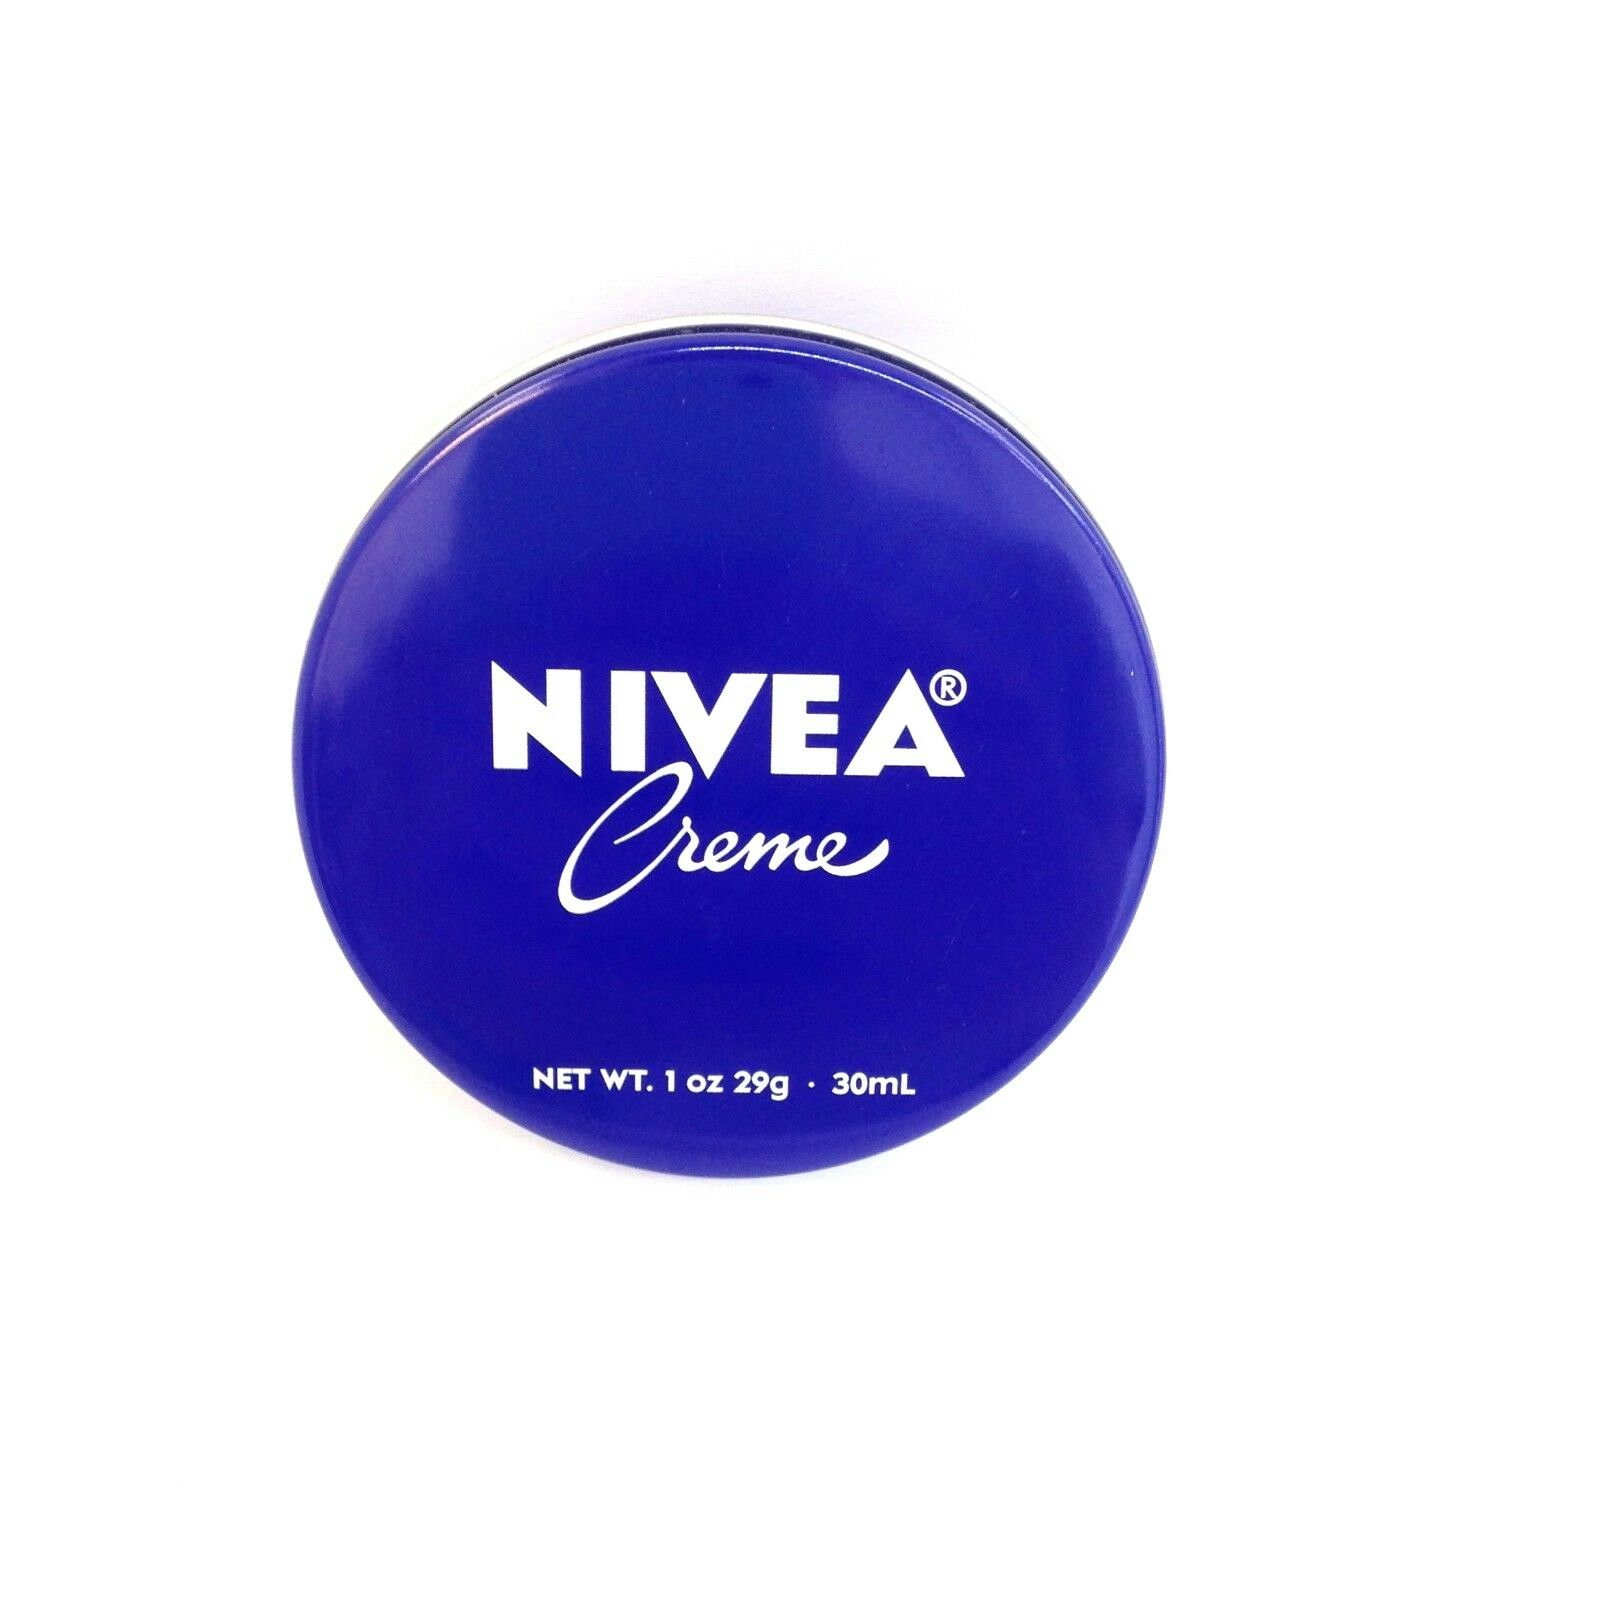 New NIVEA CREME SKIN MOISTURIZER TIN PURSE TRAVEL SIZE 1 oz Made in Mexico • $5.66